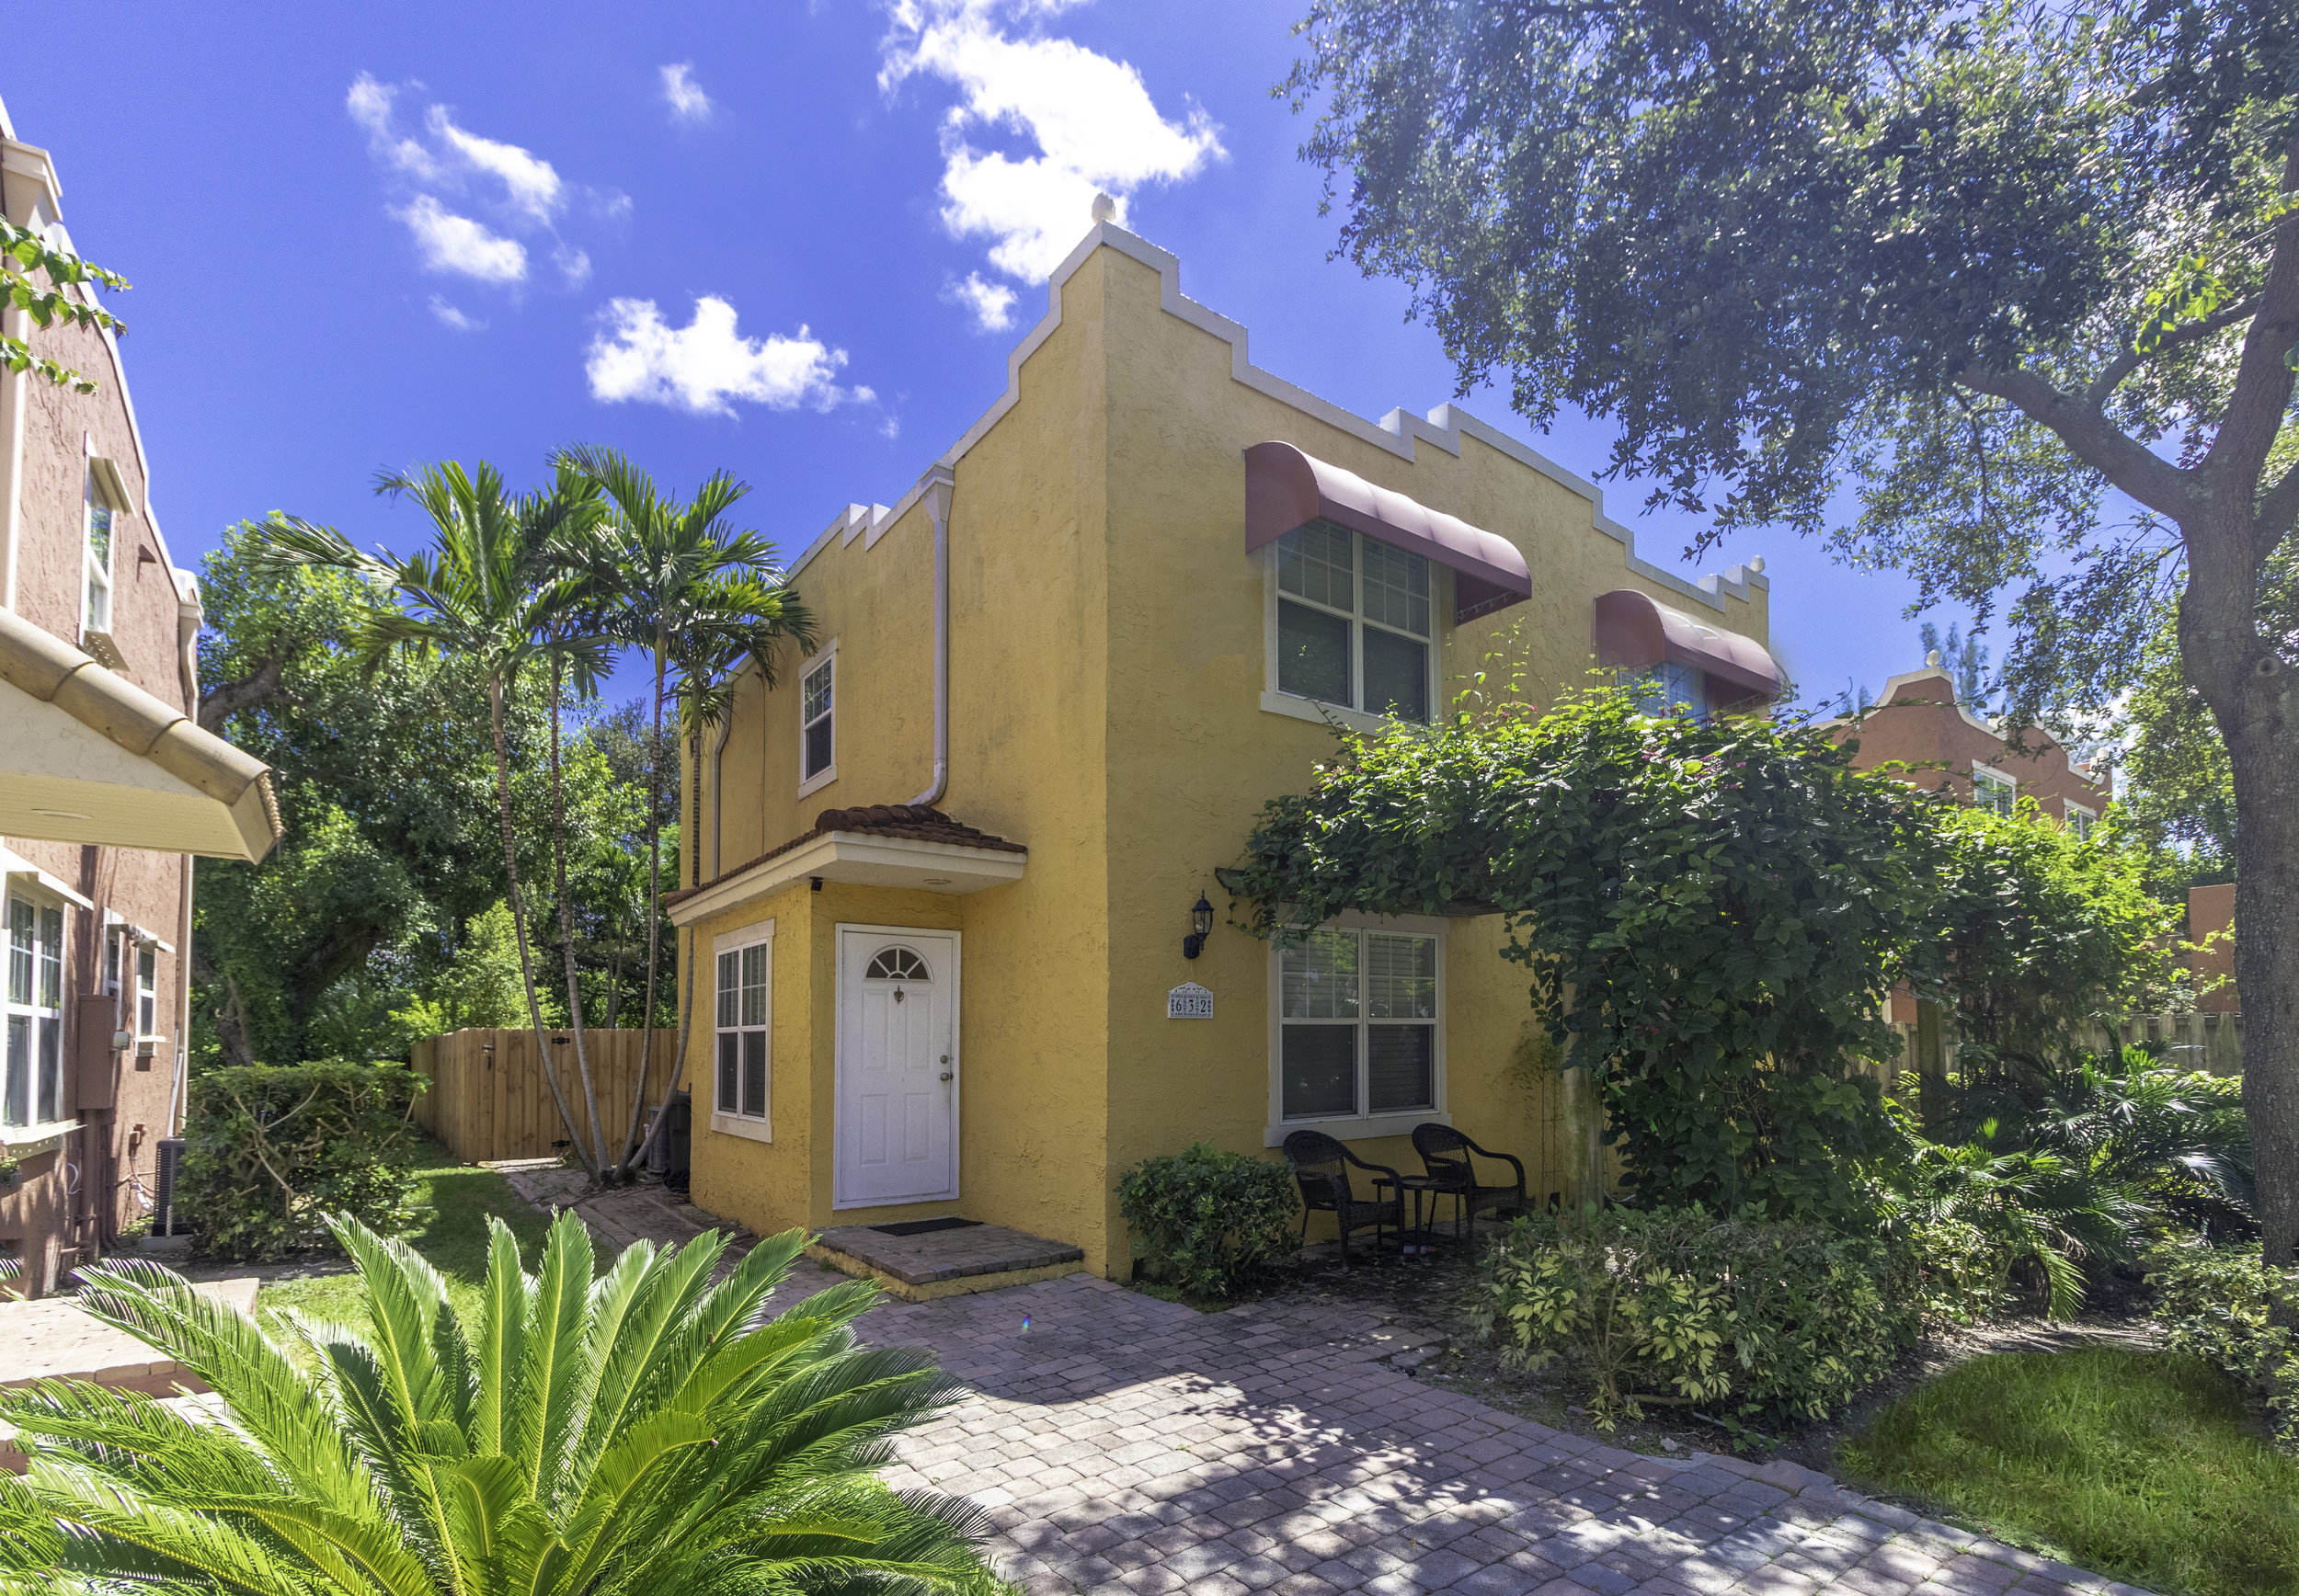 SOLD $248,0002016 - 632 NW 2nd Ave #632 Fort Lauderdale FL 33311